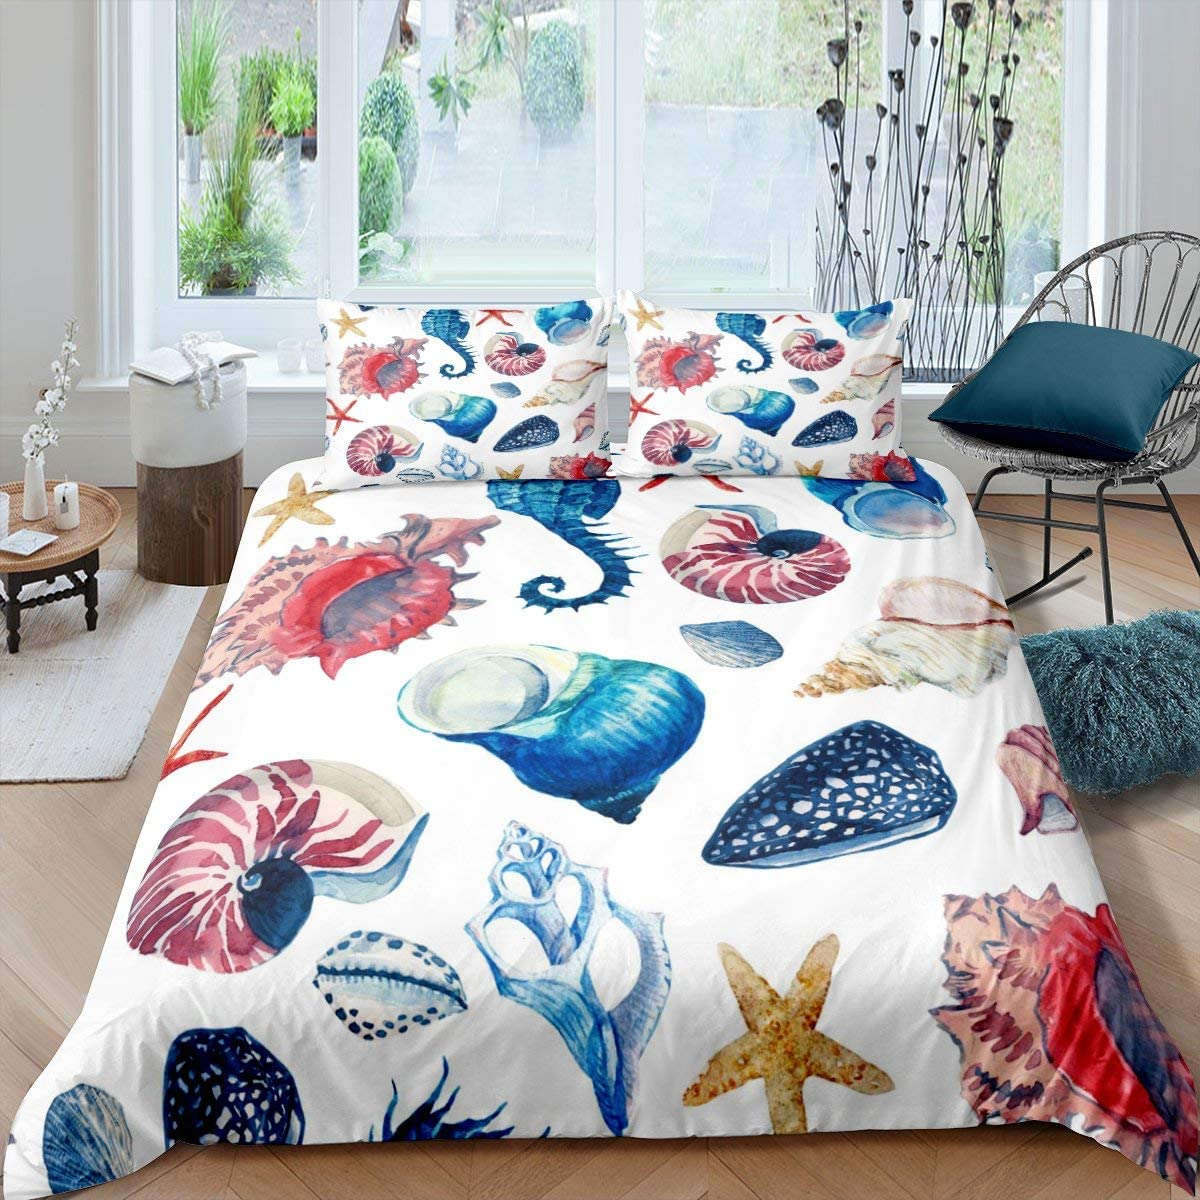 Conch Tie Dye Duvet Cover Various Conch Bedding Set Hawaiian Beach Shell Comforter Cover For Kids Boys Girls Teens Ocean Marine Life Bedclothes Bedroom Decor With 2 Pillow Cases Queen Size Blue Red